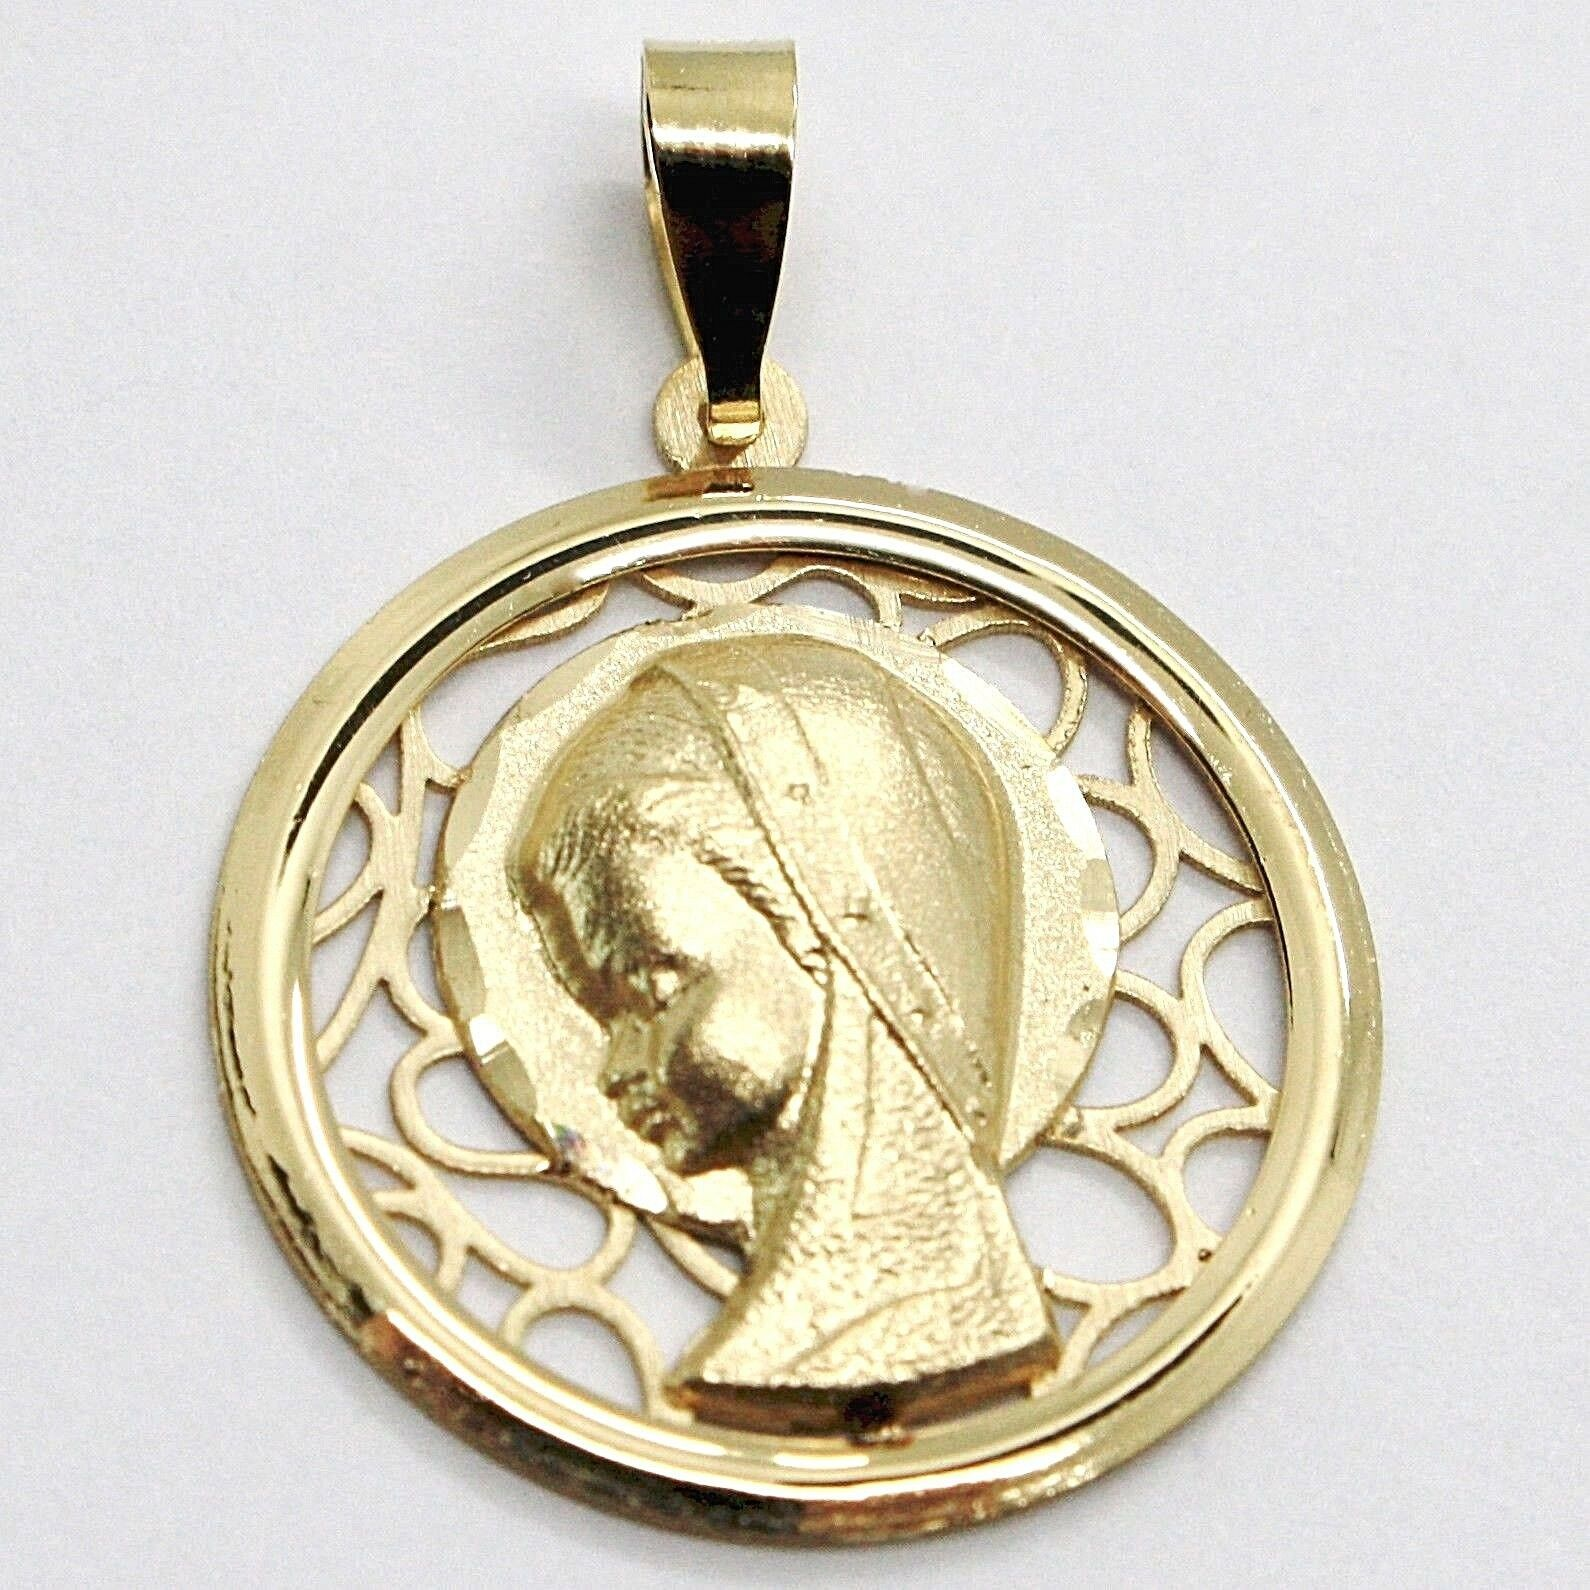 PENDANT MEDAL YELLOW GOLD 18K Virgo Mary jane, FINELY WORKED, WITH FRAME